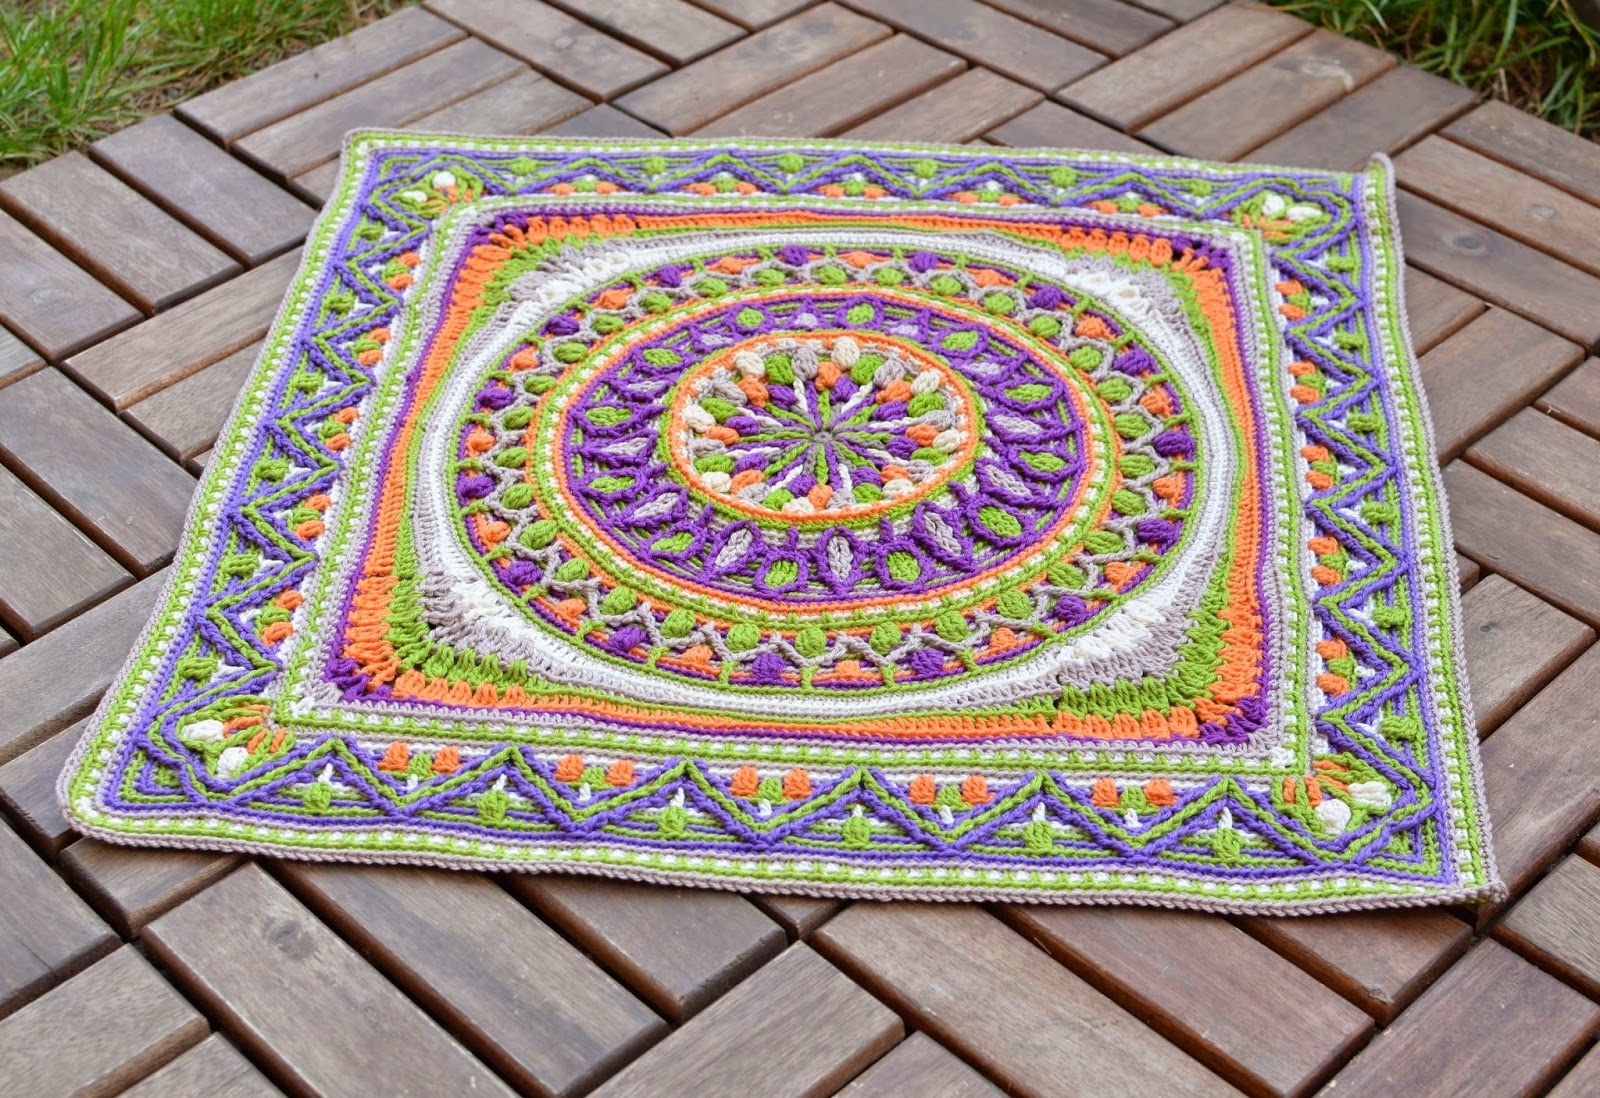 Crochet Patterns Using Mandala Yarn : And here is my third squaring attempt - just a smaller version made ...